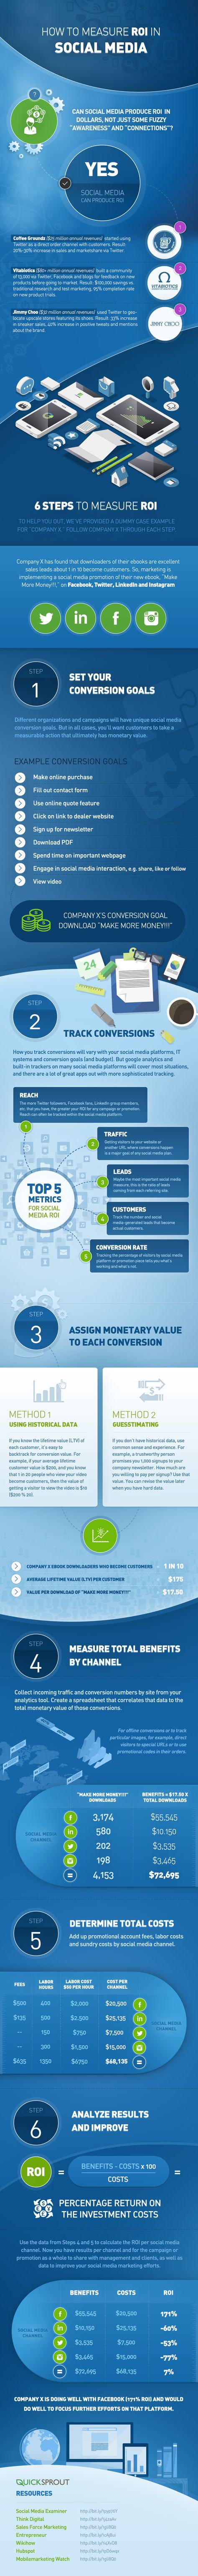 How to Calculate Social Media ROI: A Delightfully Short Guide